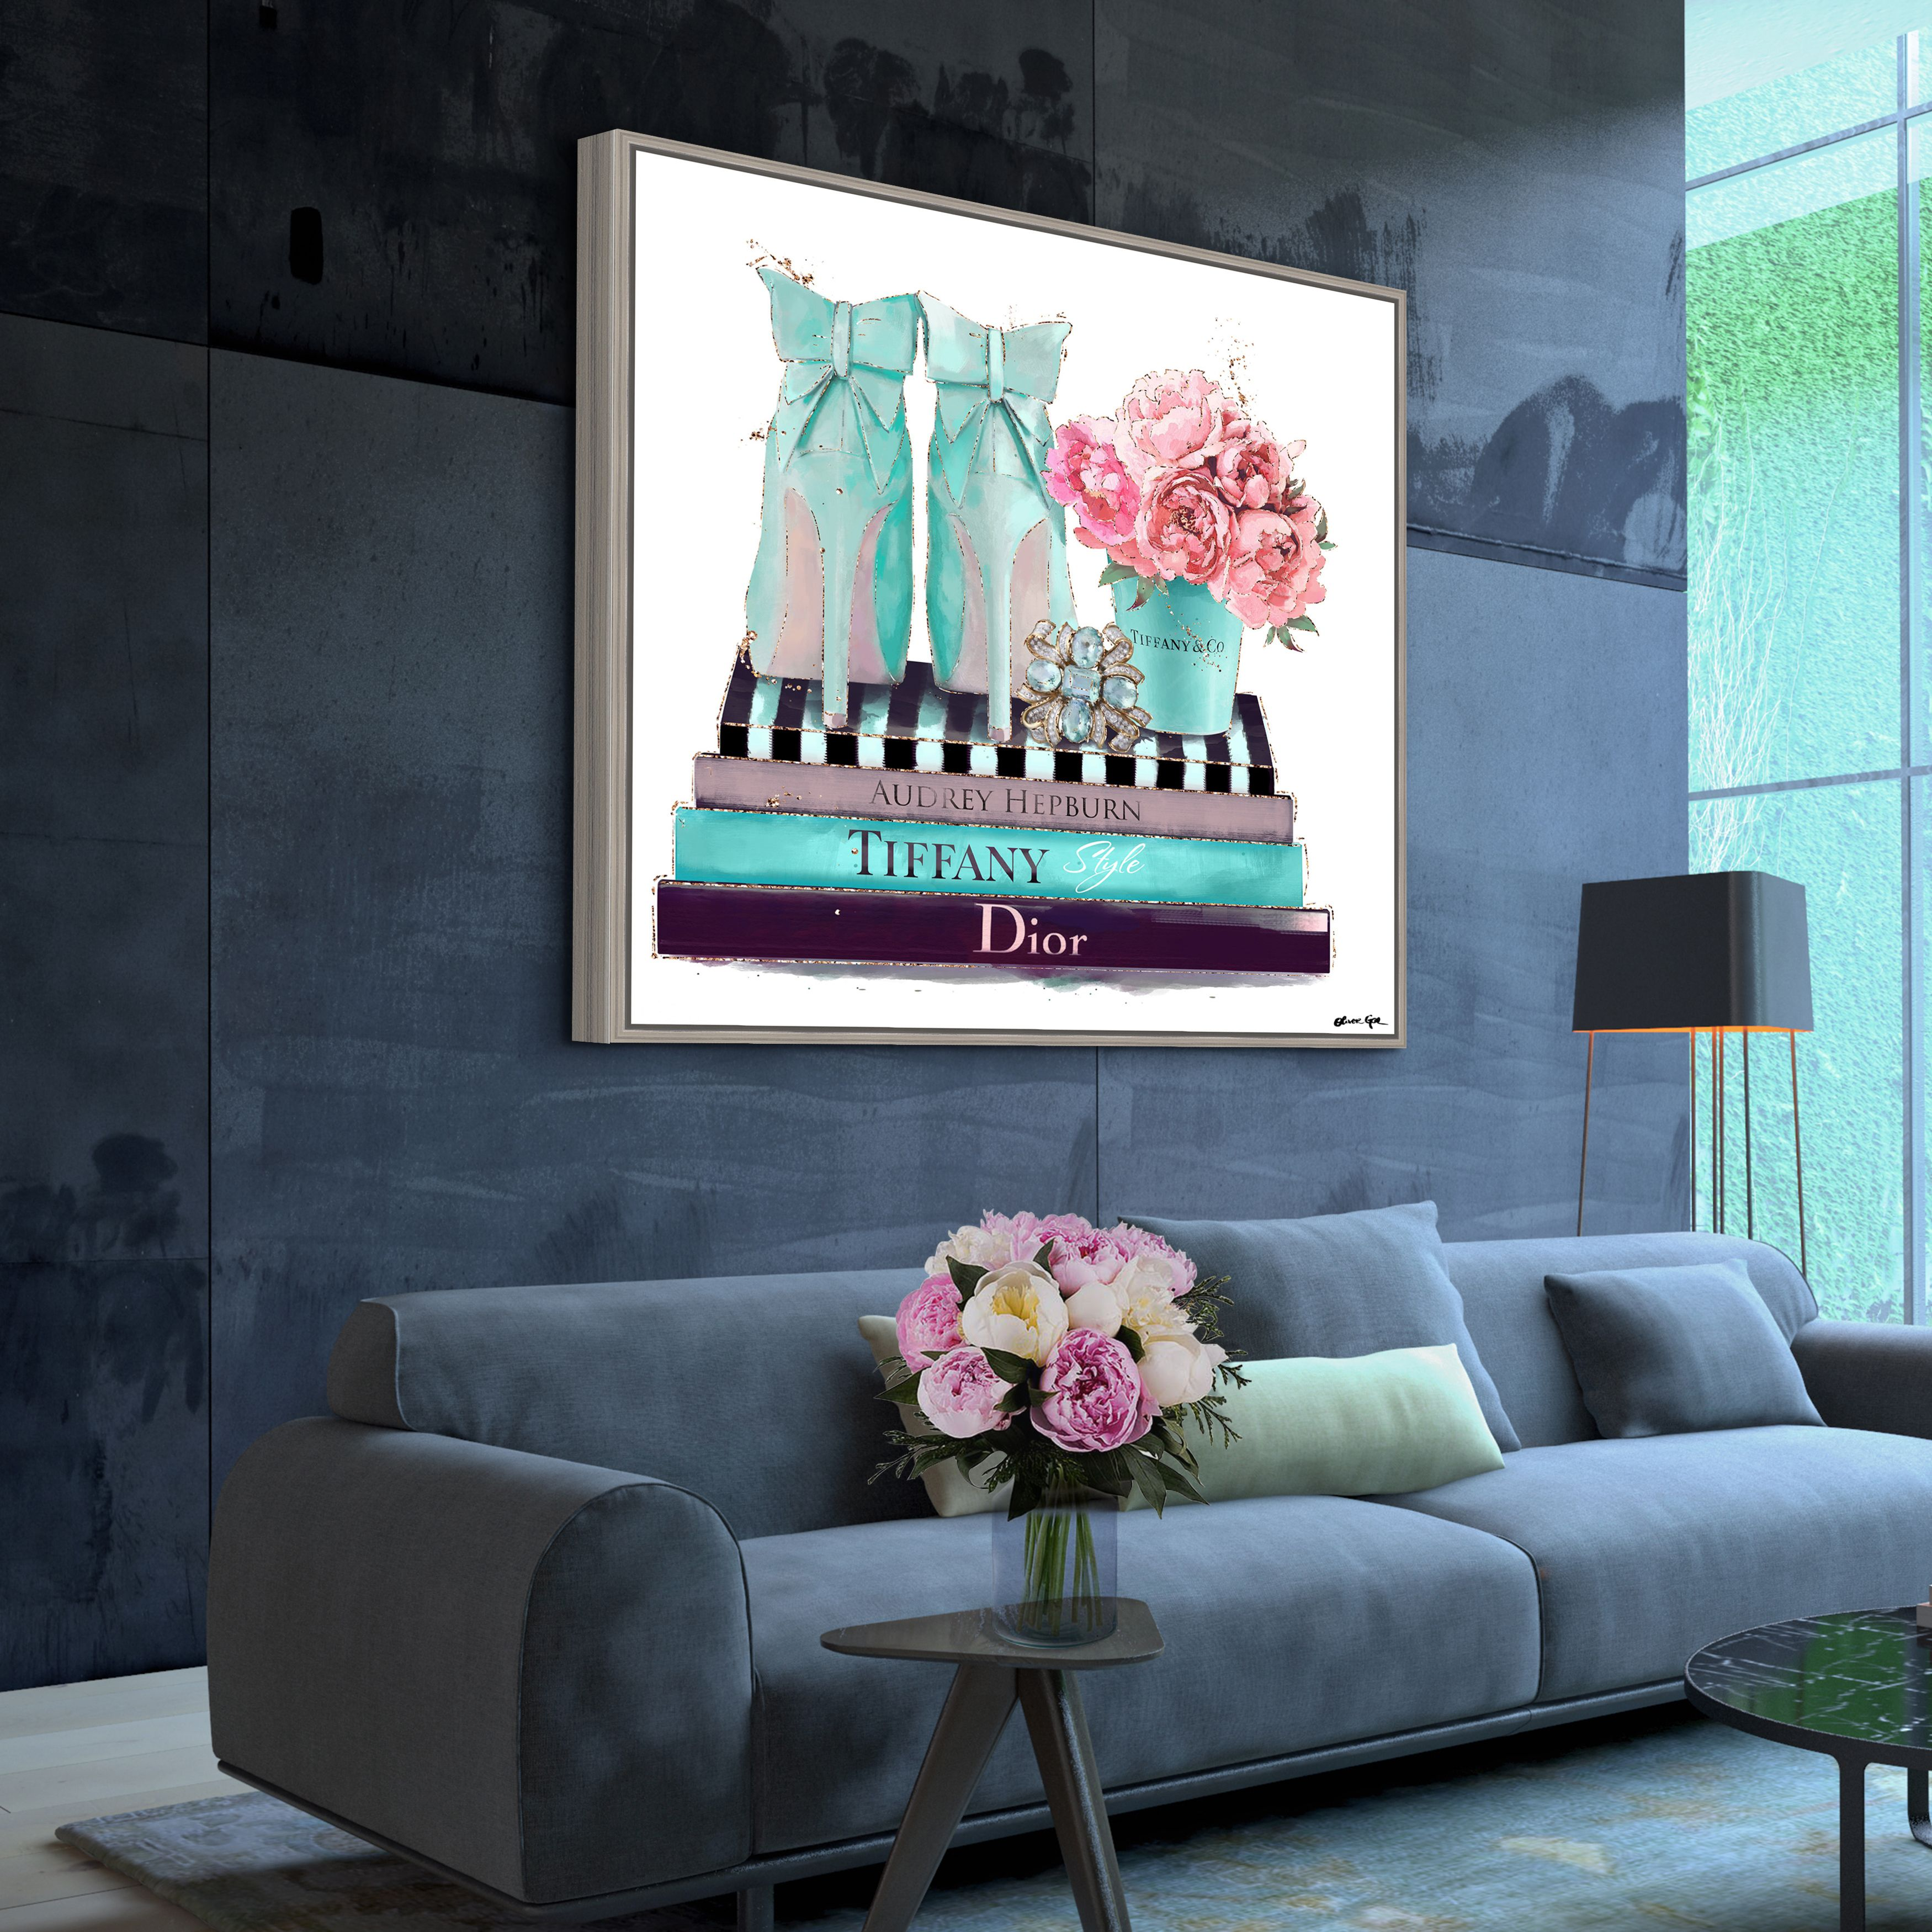 My Favorite Things Wall Art In 2020 Blue Wall Art Blue Decor Home Decor